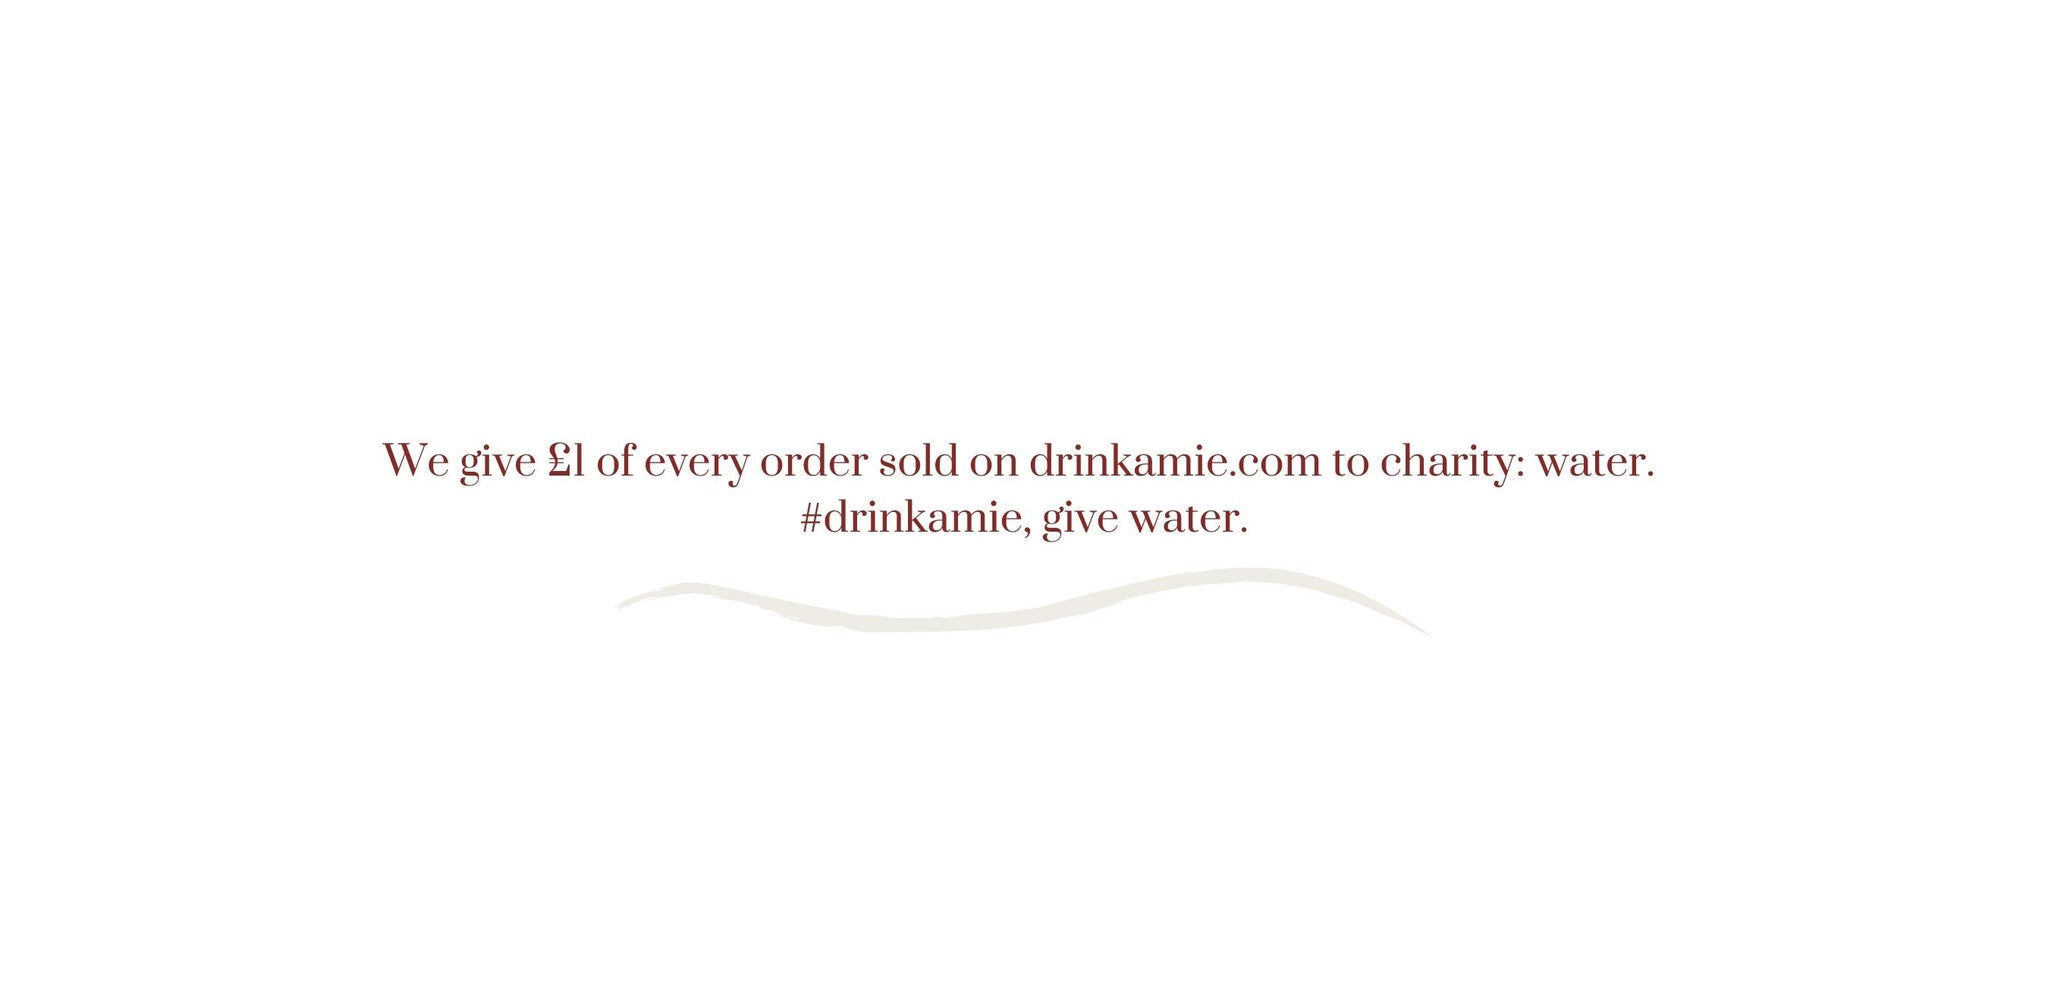 We give £1 per order to charity: water